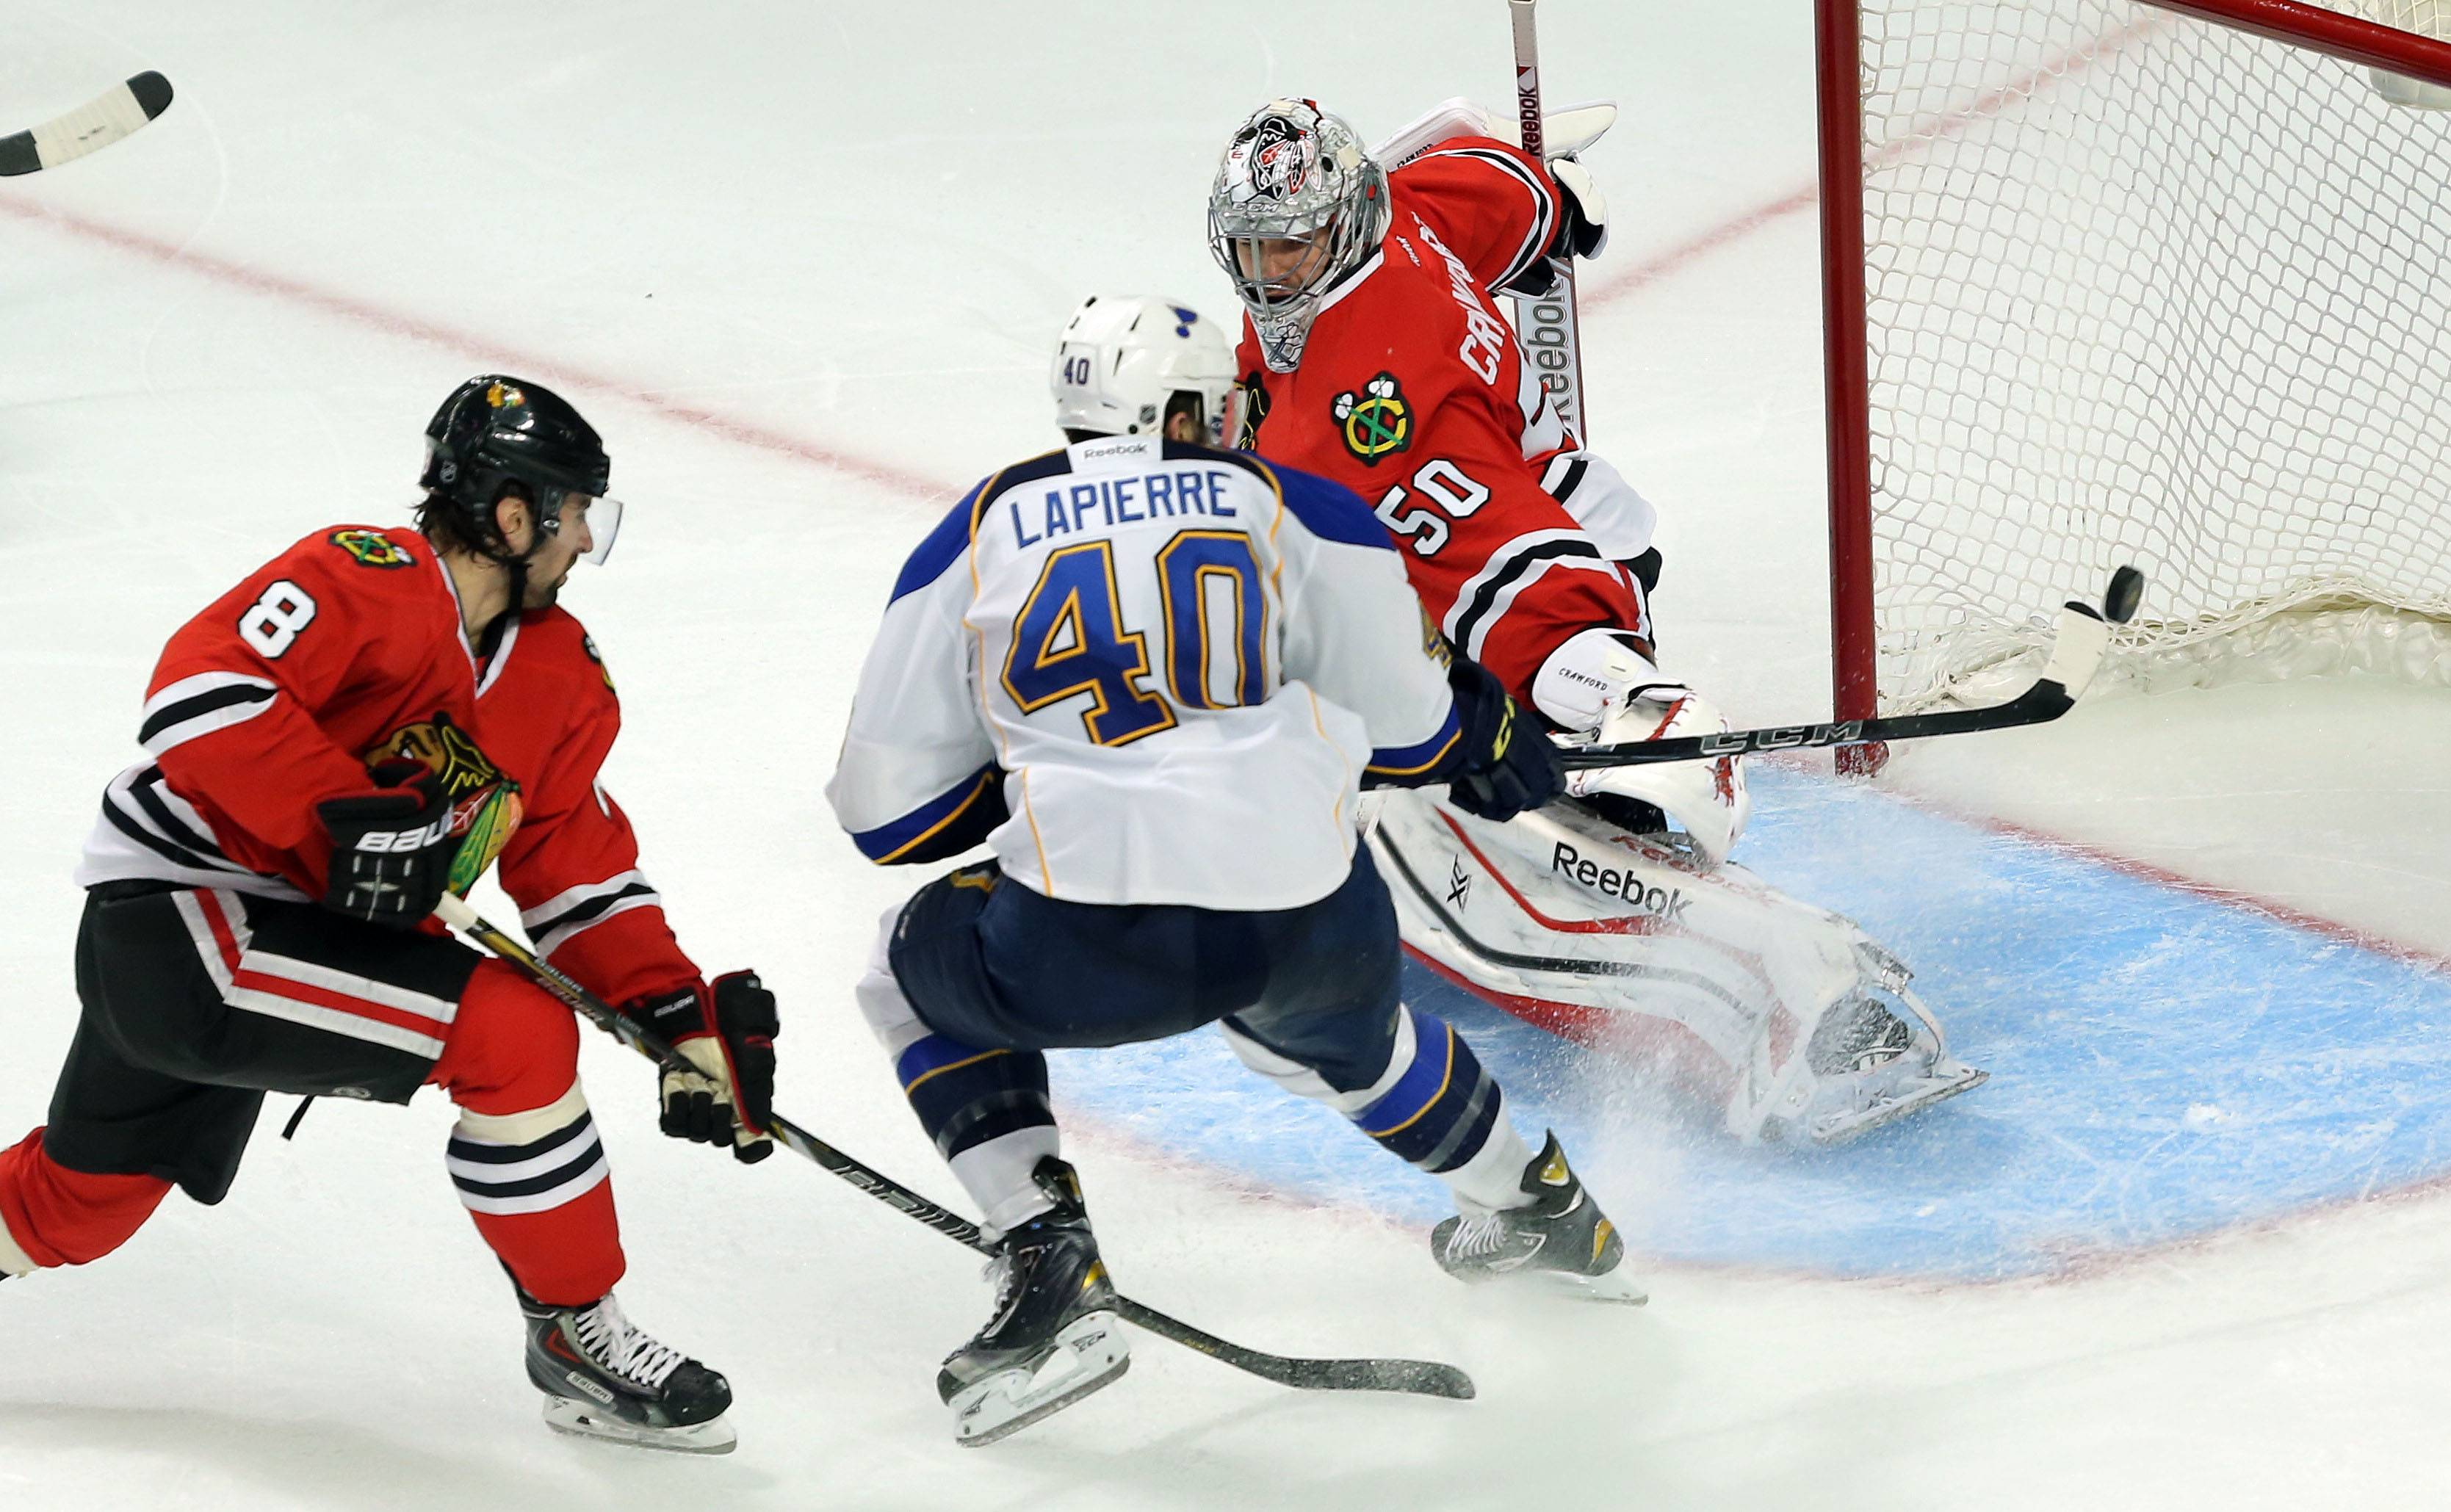 St. Louis Blues center Maxim Lapierre drives on Chicago Blackhawks goalie Corey Crawford.